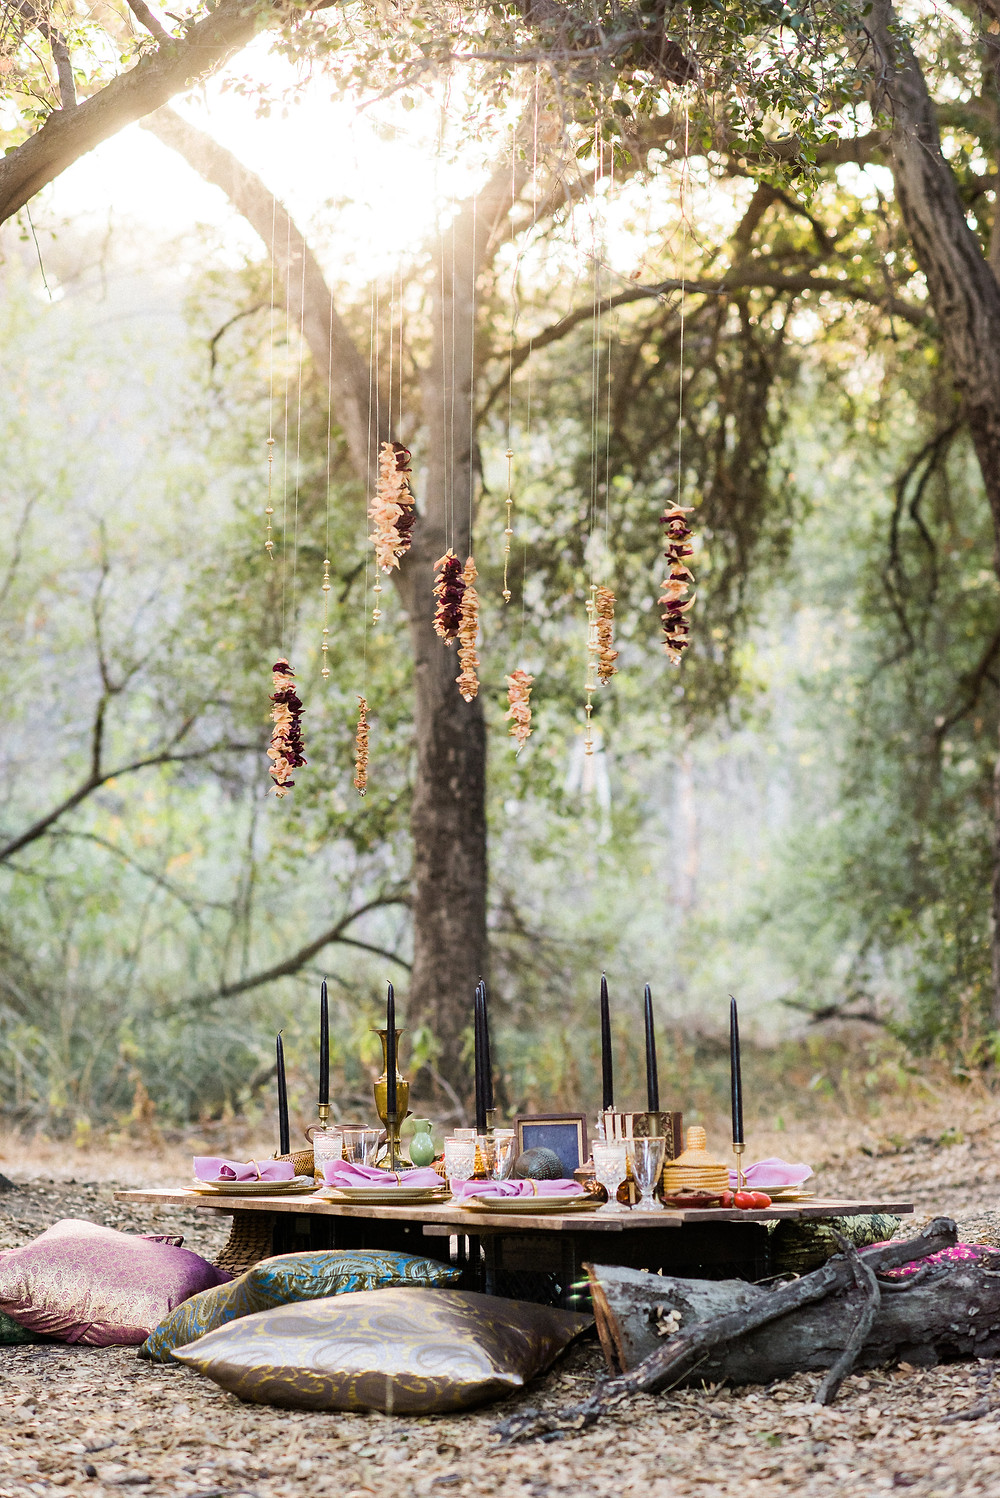 Stunning custom table set for dinner in the Los Angeles forrest